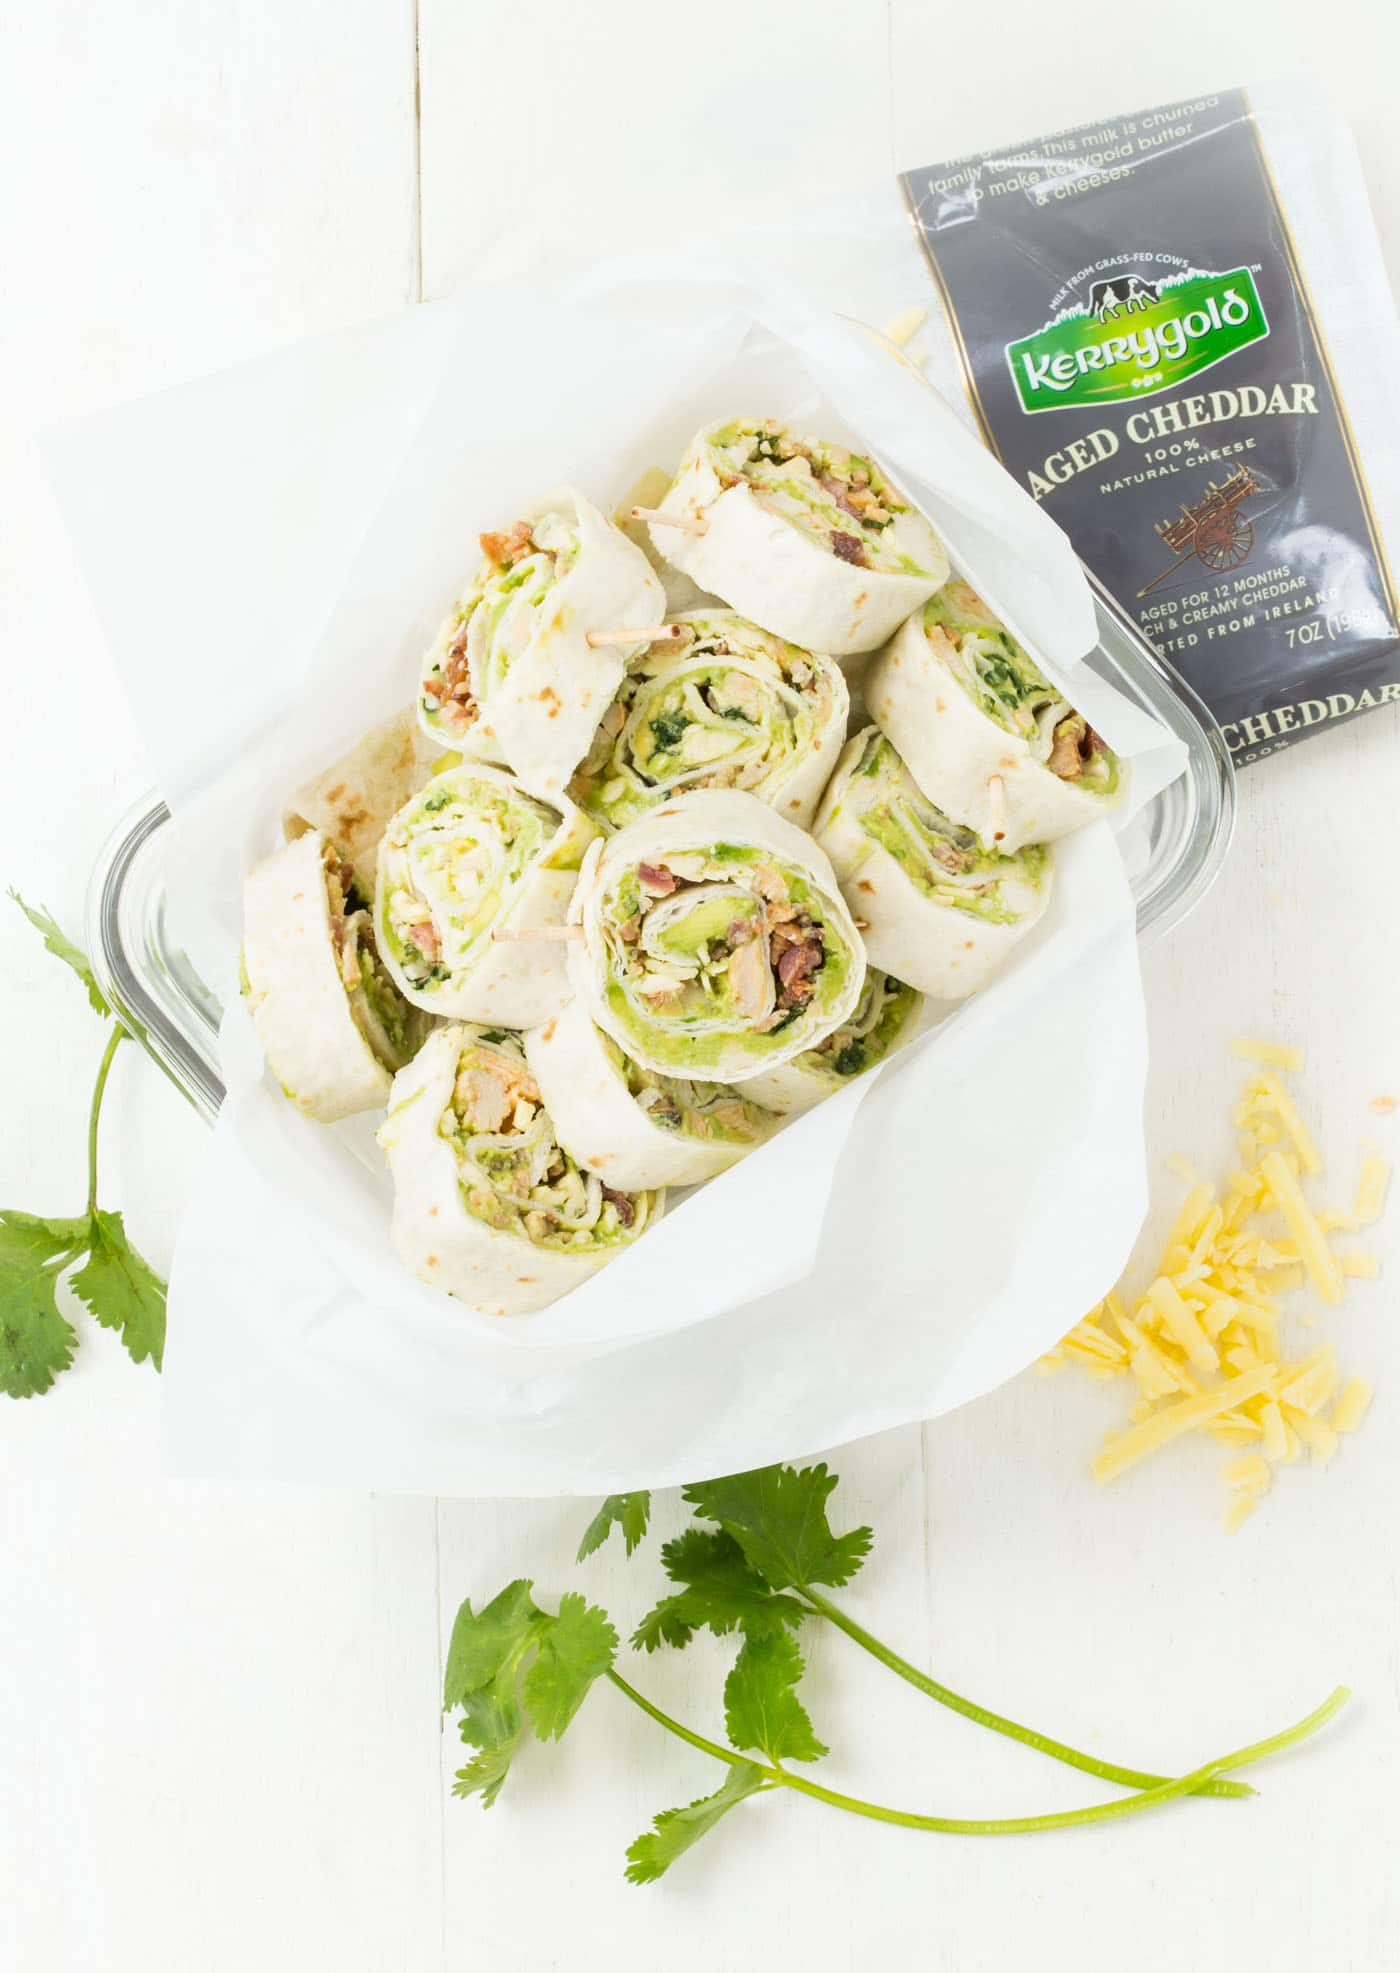 Avocado Bacon Pinwheels stacked in plastic bowl with shredded cheese and cilantro sprigs on the side.